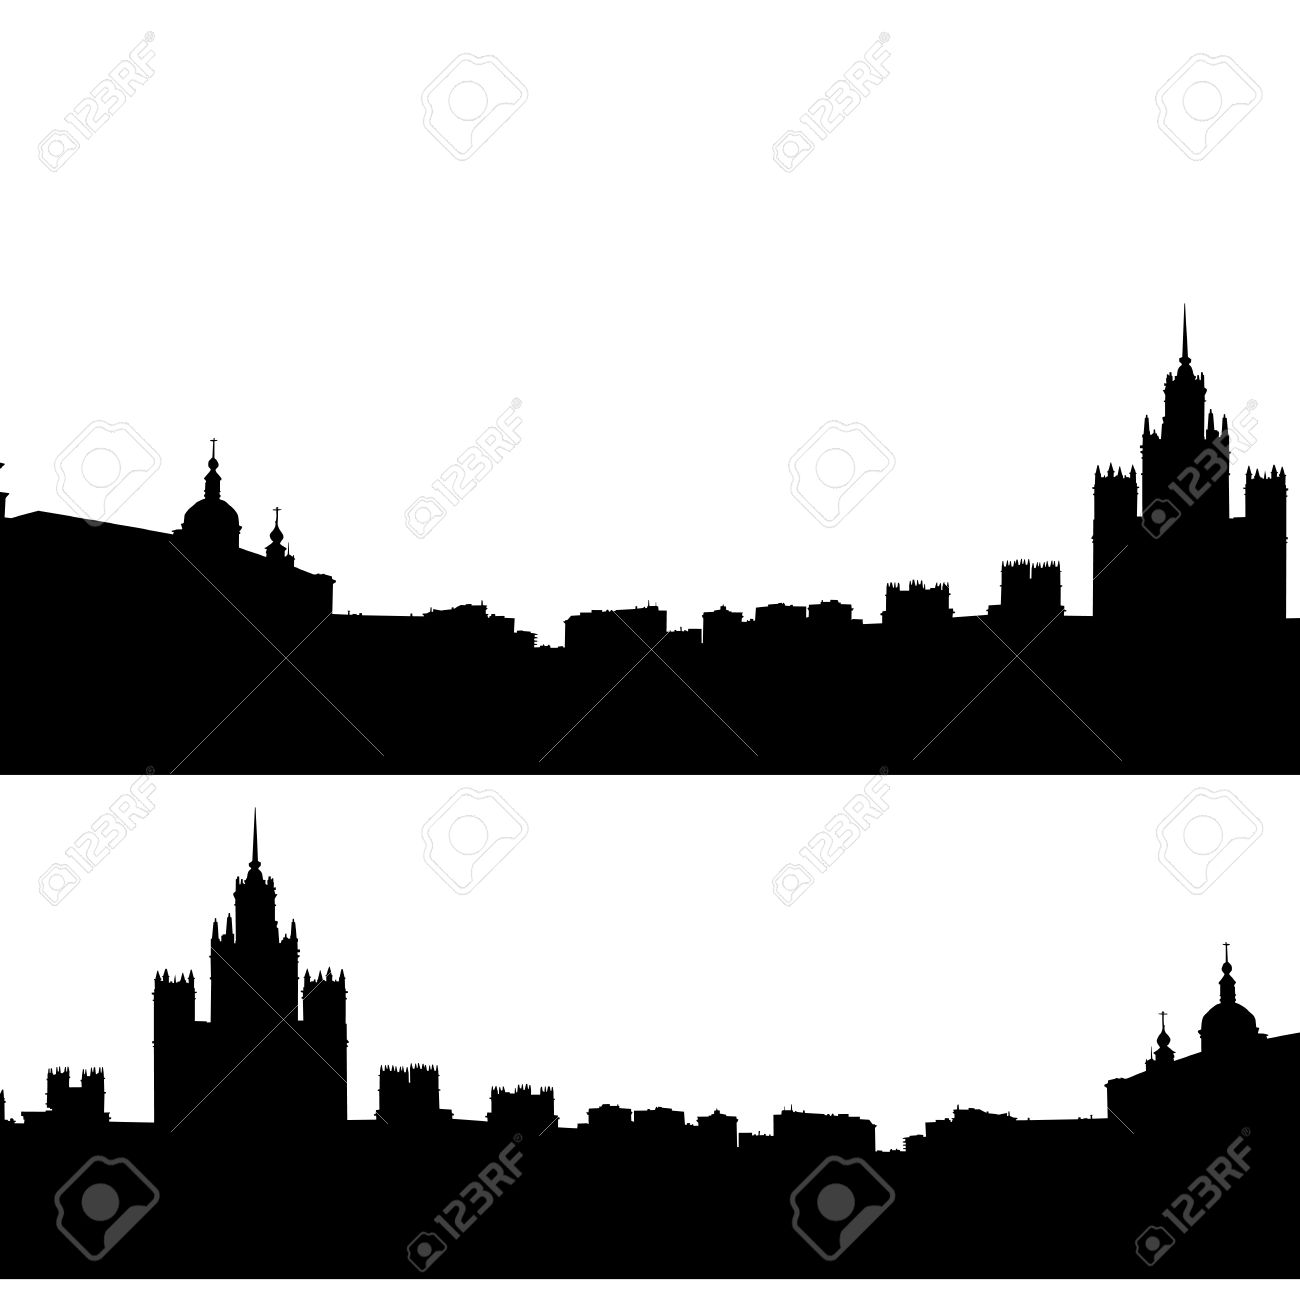 Moscow City Silhouette Skyline Vector Illustration Royalty Free.